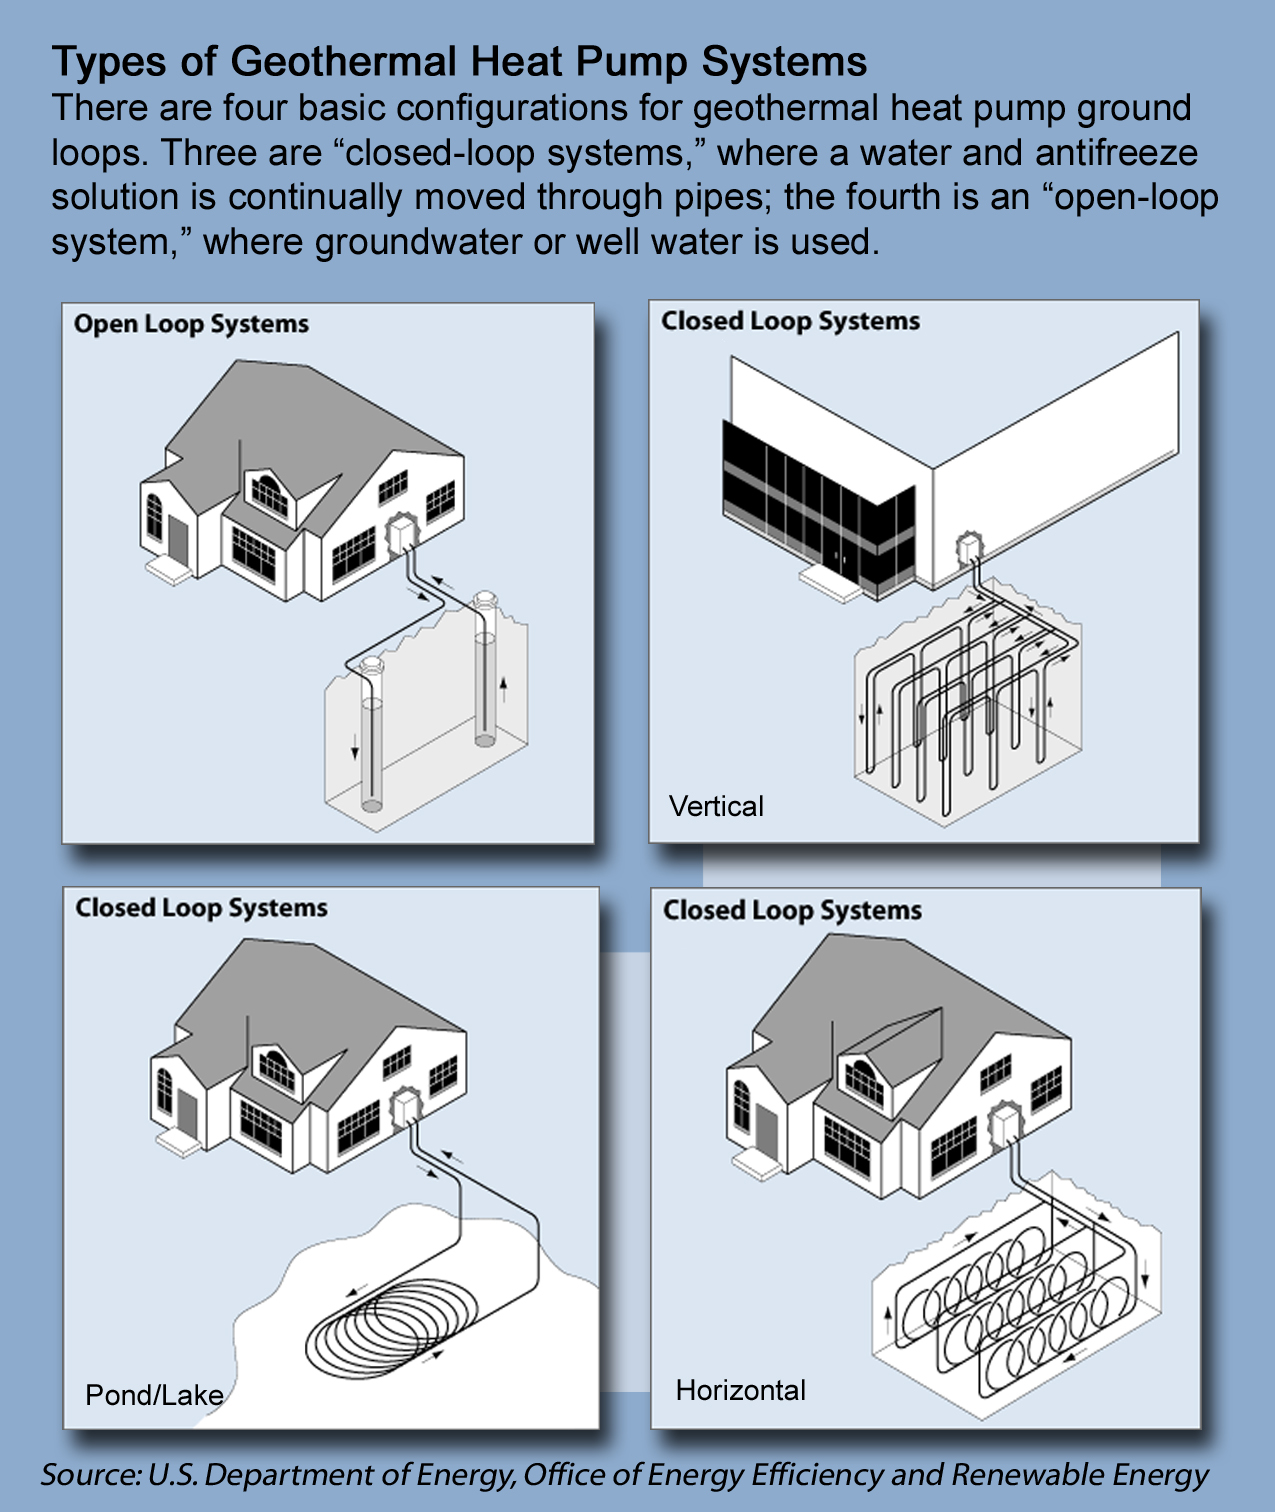 Drawings of four types of geothermal hp systems